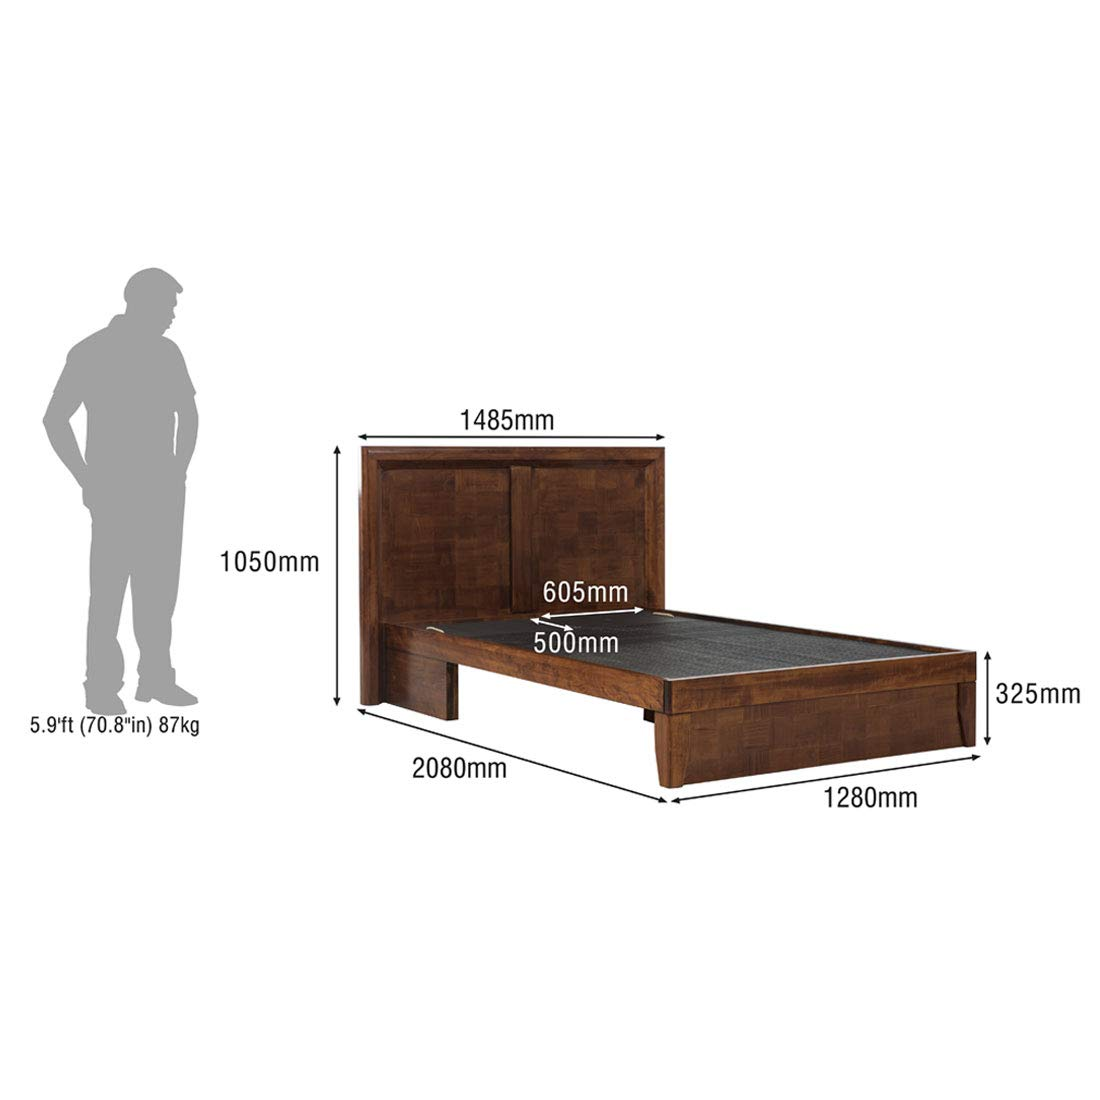 Lizam Queen Size Bed, queen size bed box (Matte Finish, Dark Oak)